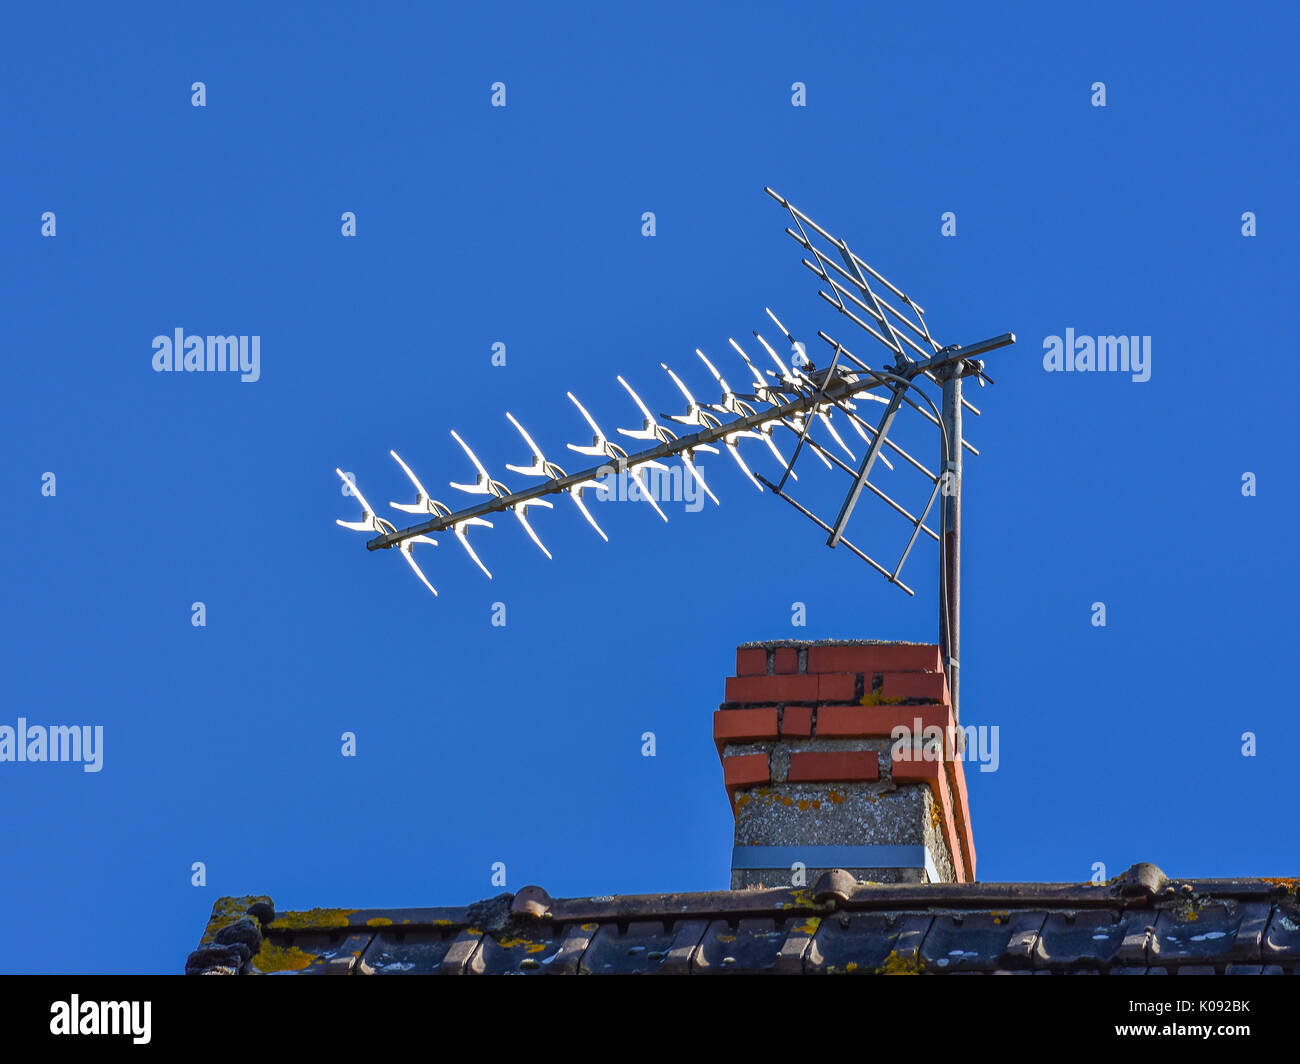 French Tv Stock Photos French Tv Stock Images Alamy # Pose Television En Bois